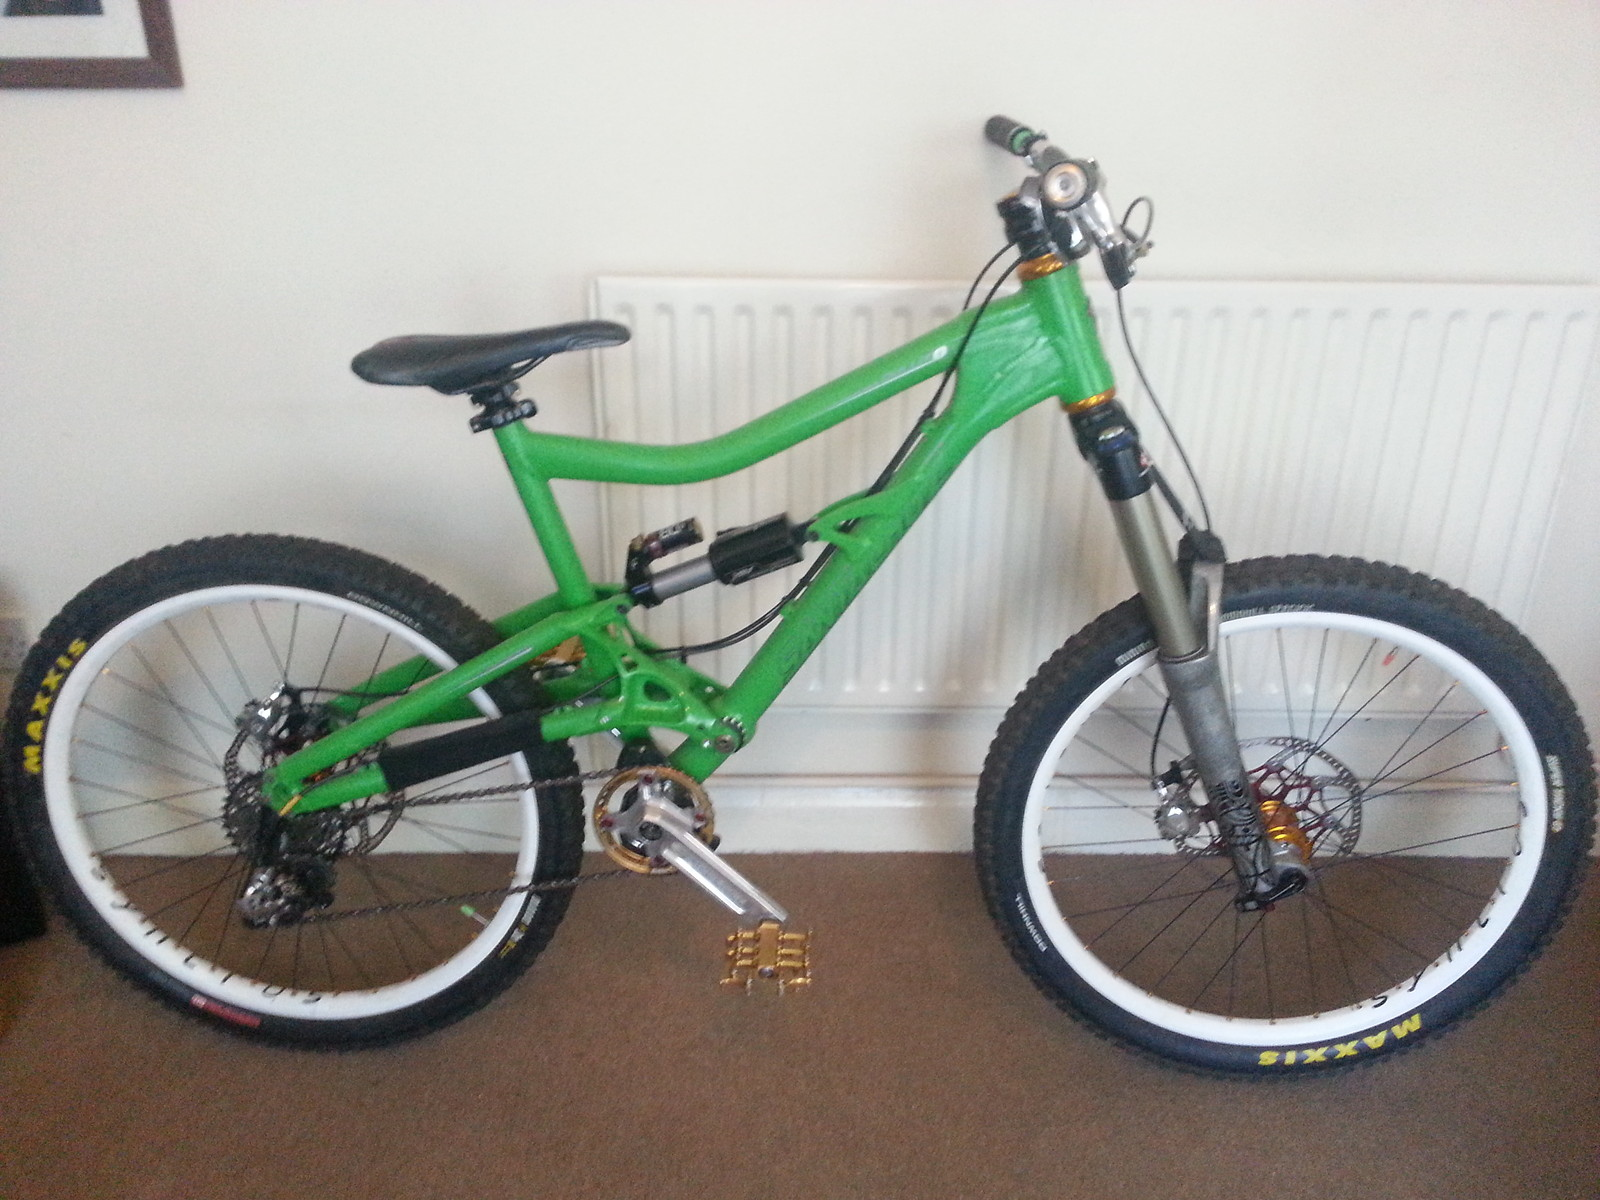 Santa Cruz Bullit MK2 (The Green Goblette)